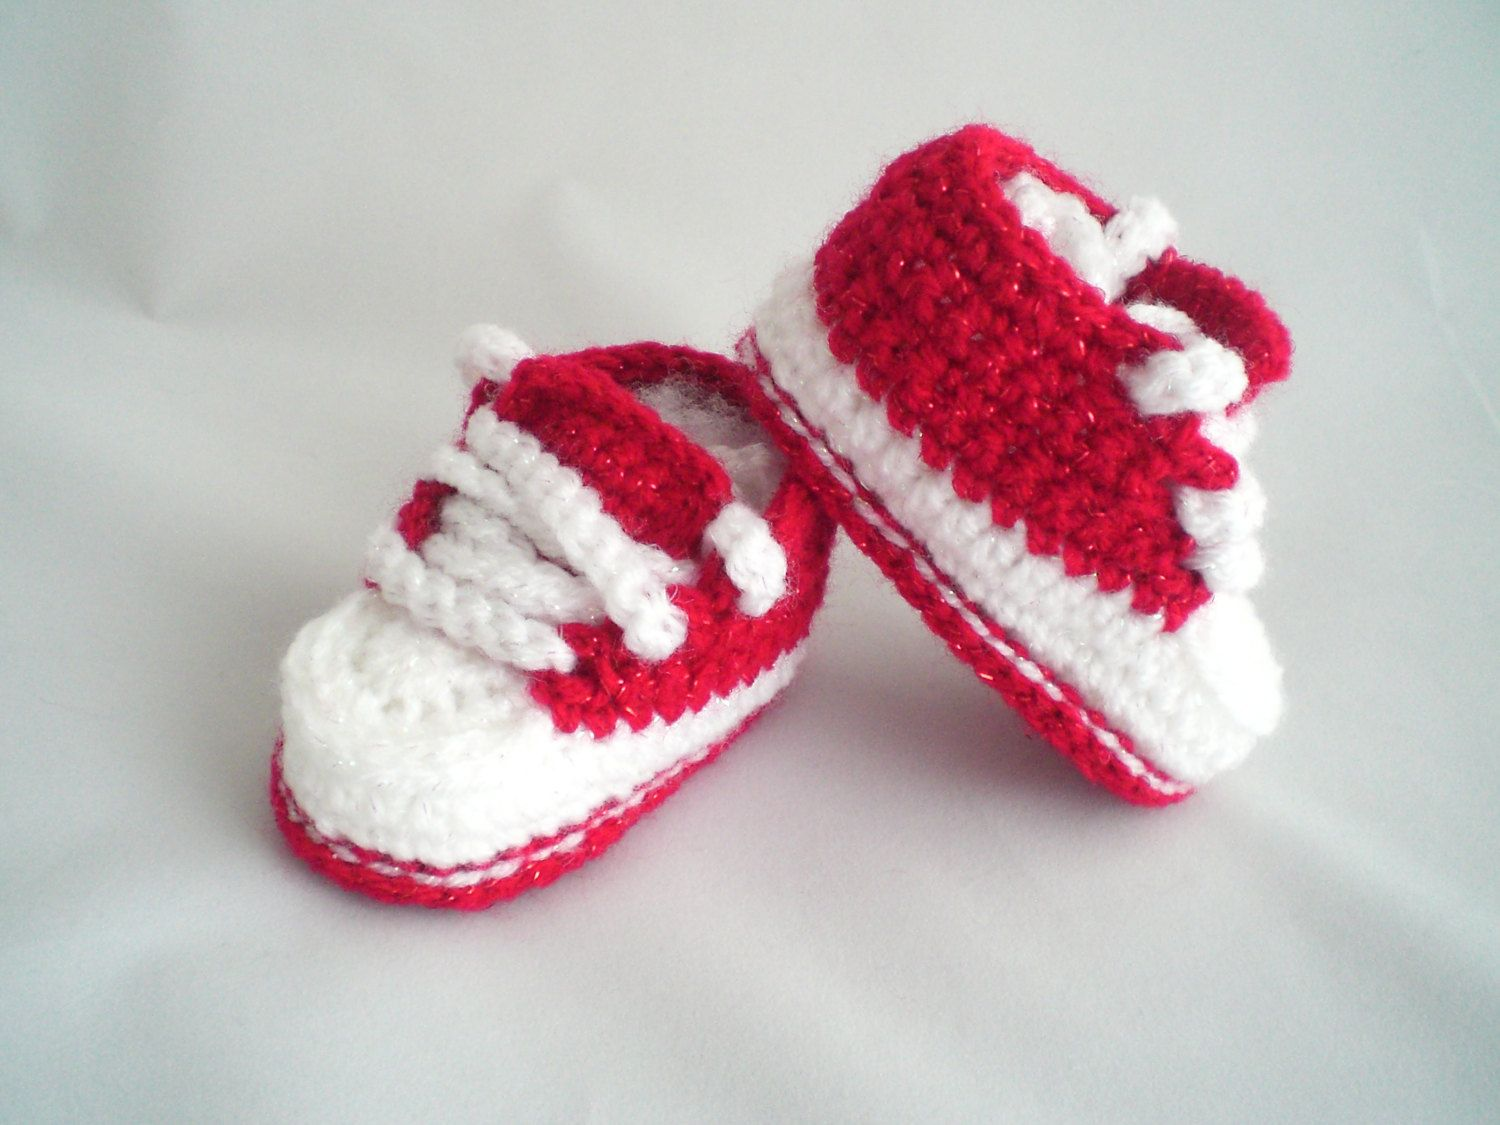 c7adf217065d7 Crochet Baby Shoes / Crochet Trainer Style Baby Shoes / Glitter Baby ...